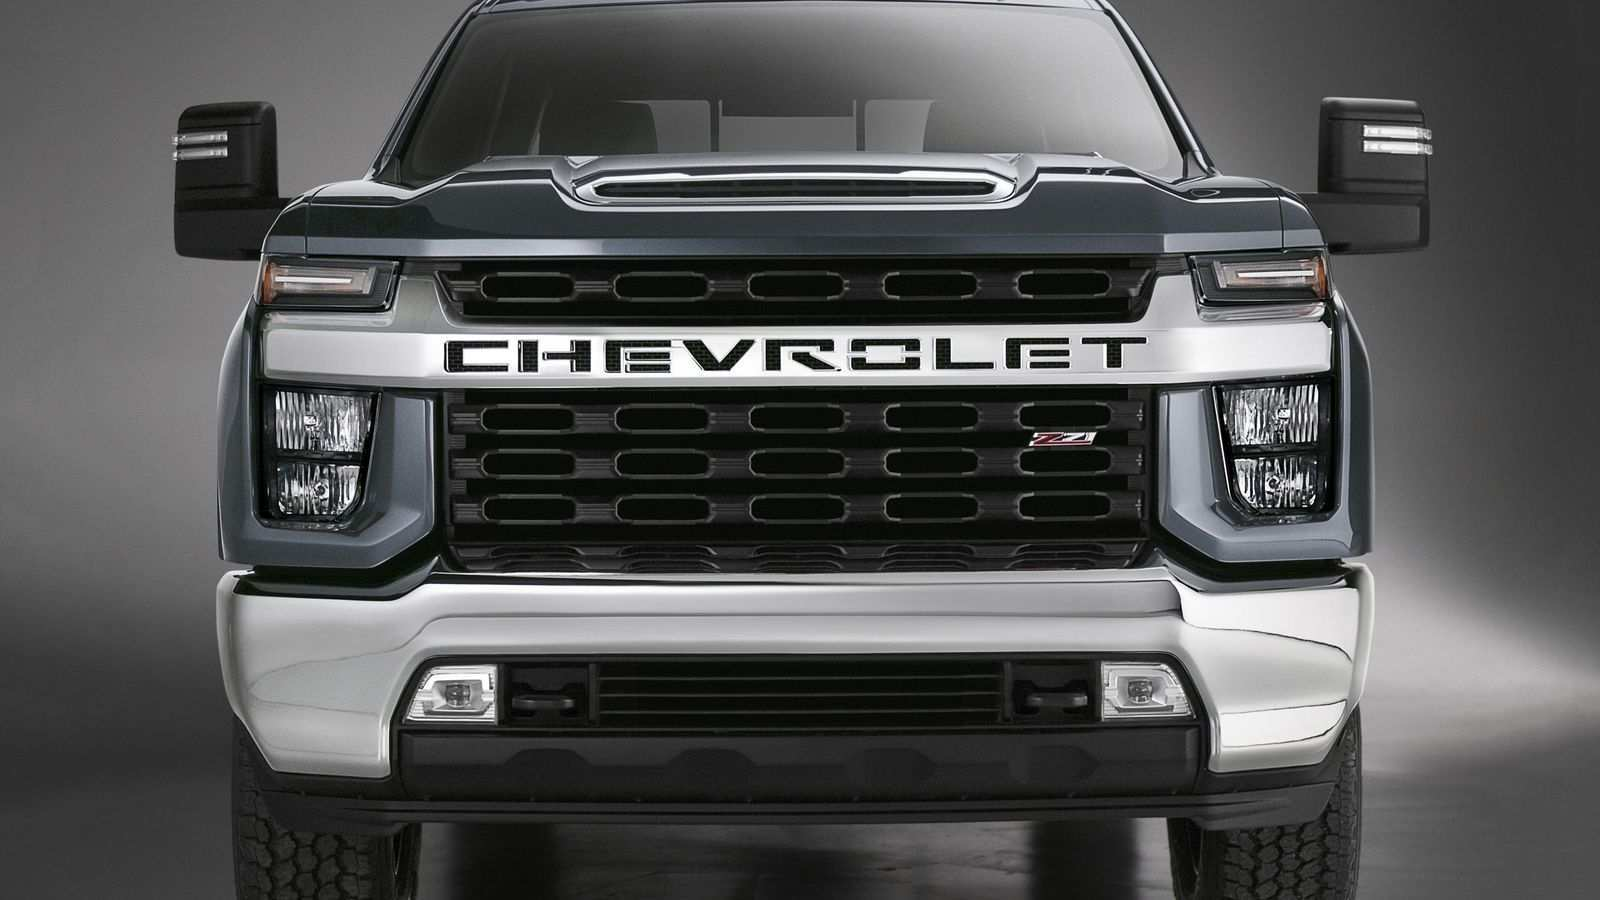 17 New 2020 Chevy Duramax Picture by 2020 Chevy Duramax